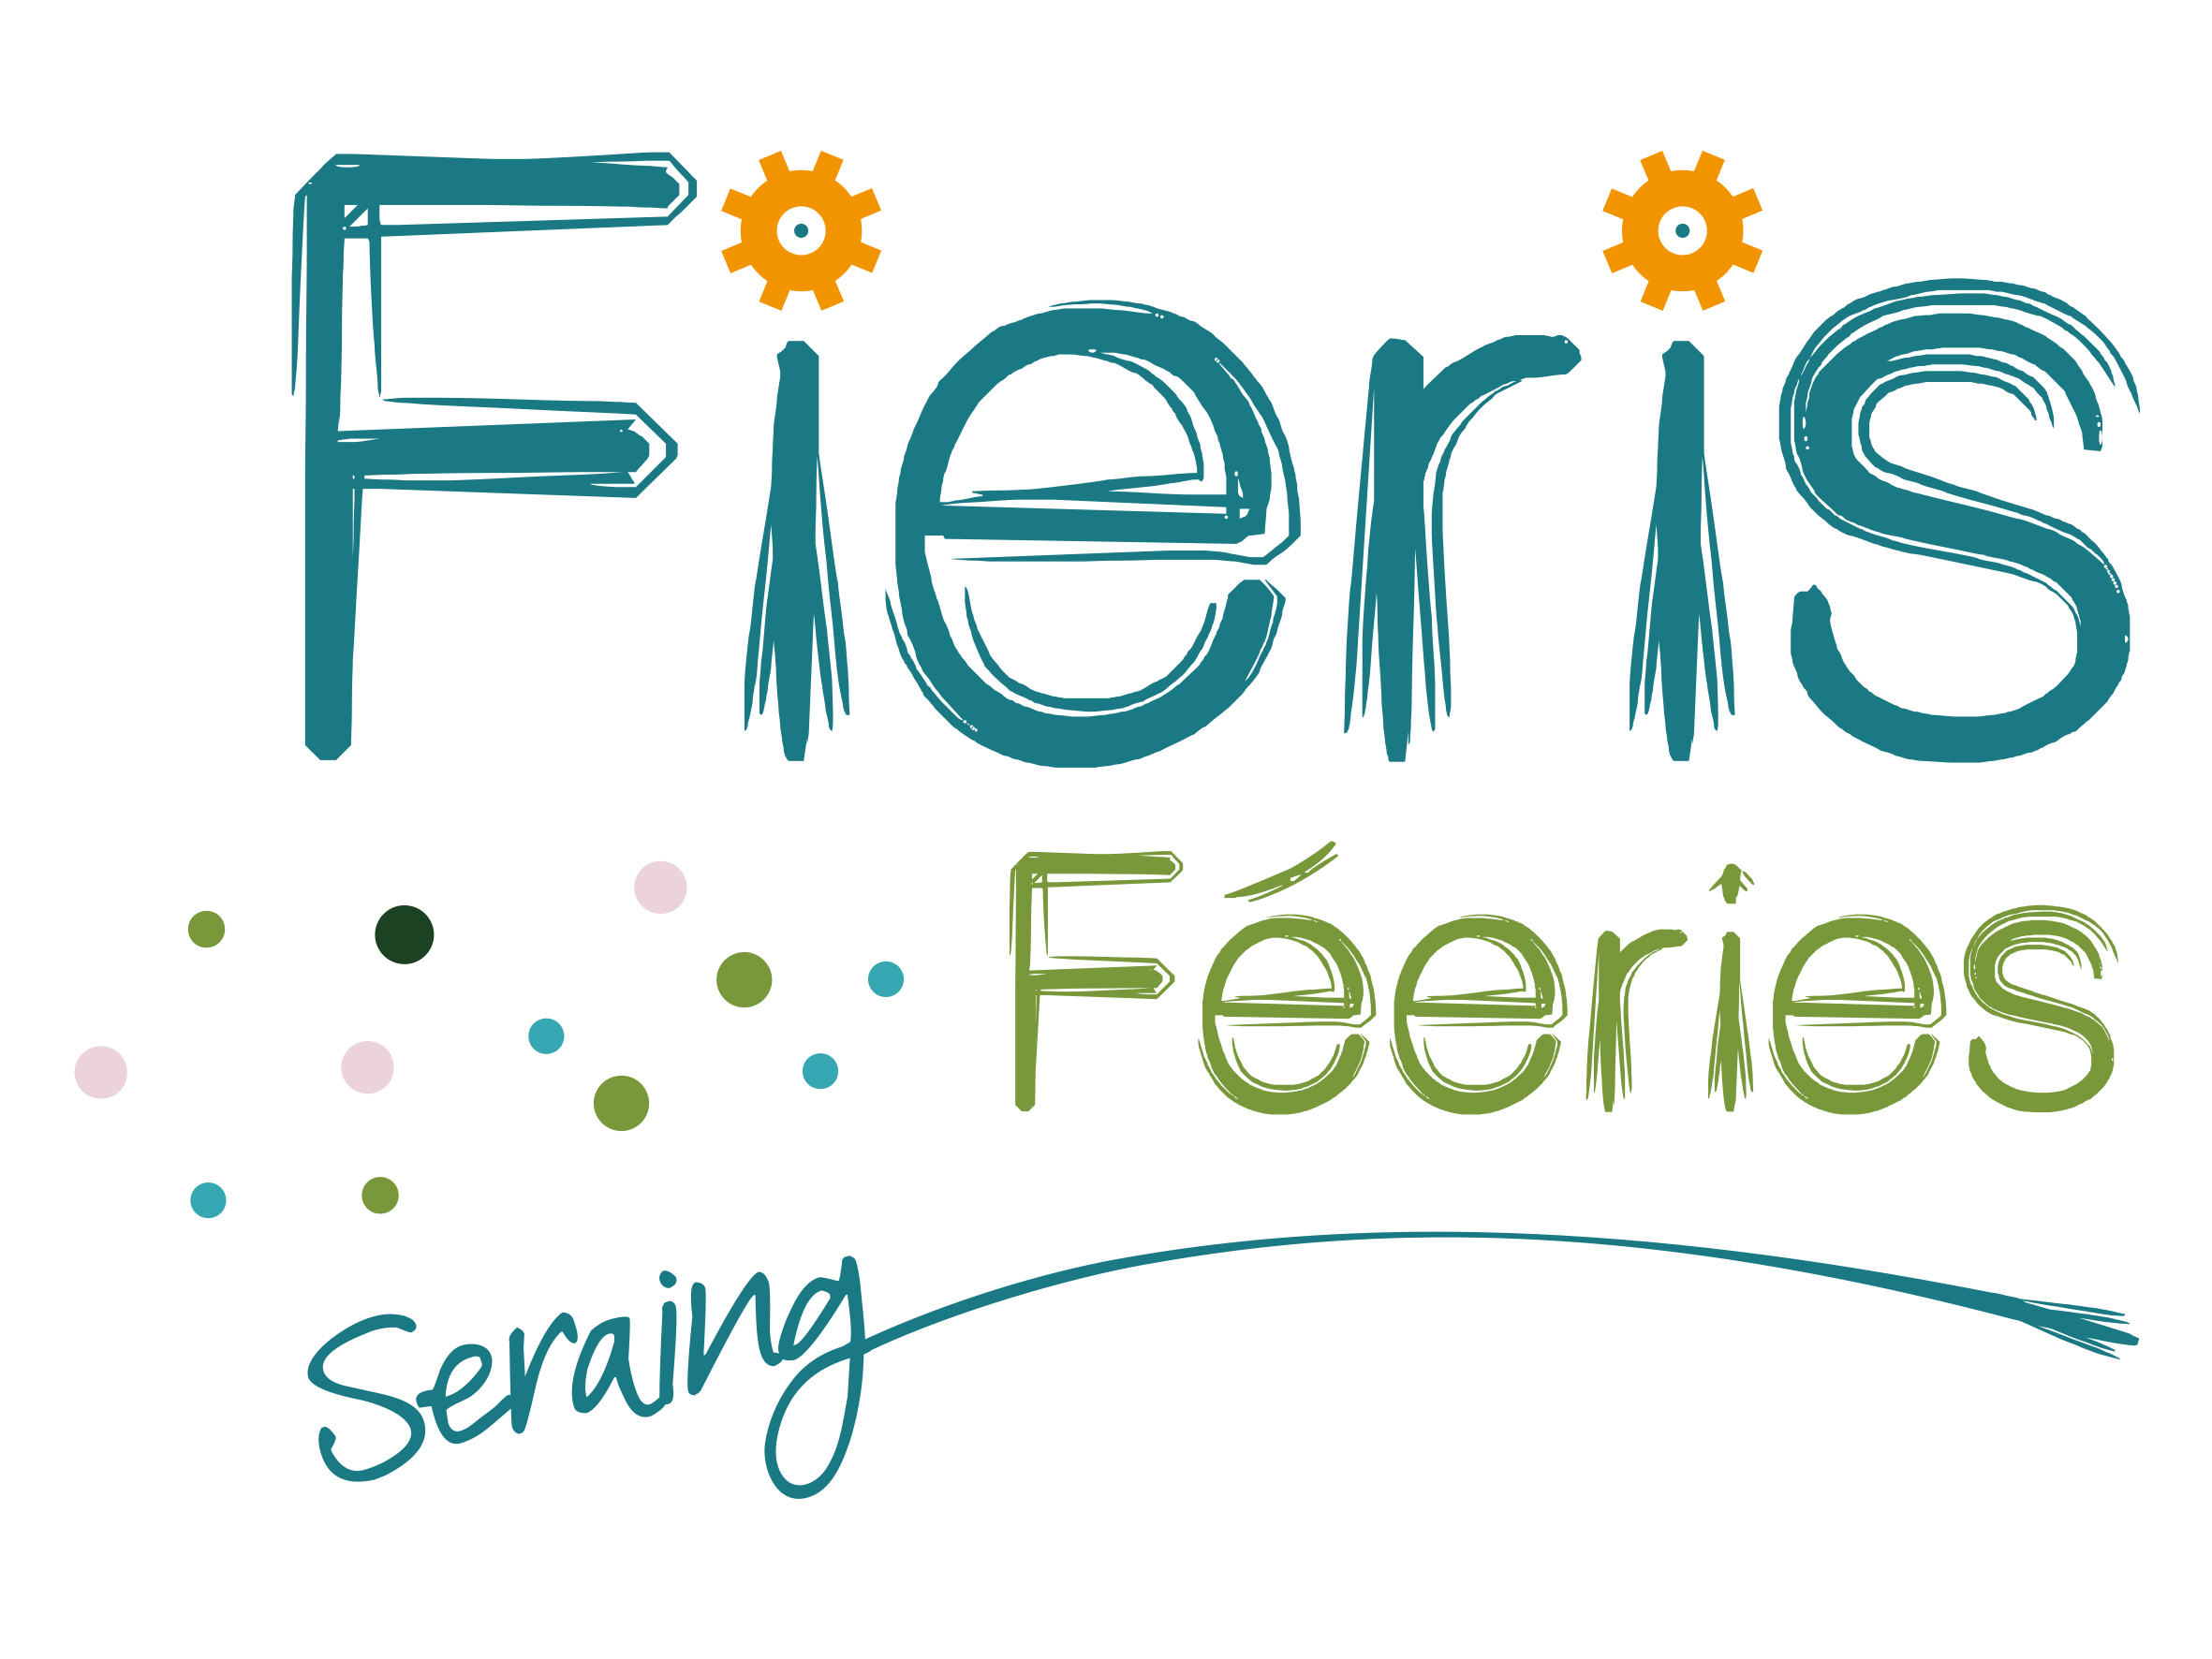 fierisfeeries seraing logo final 2